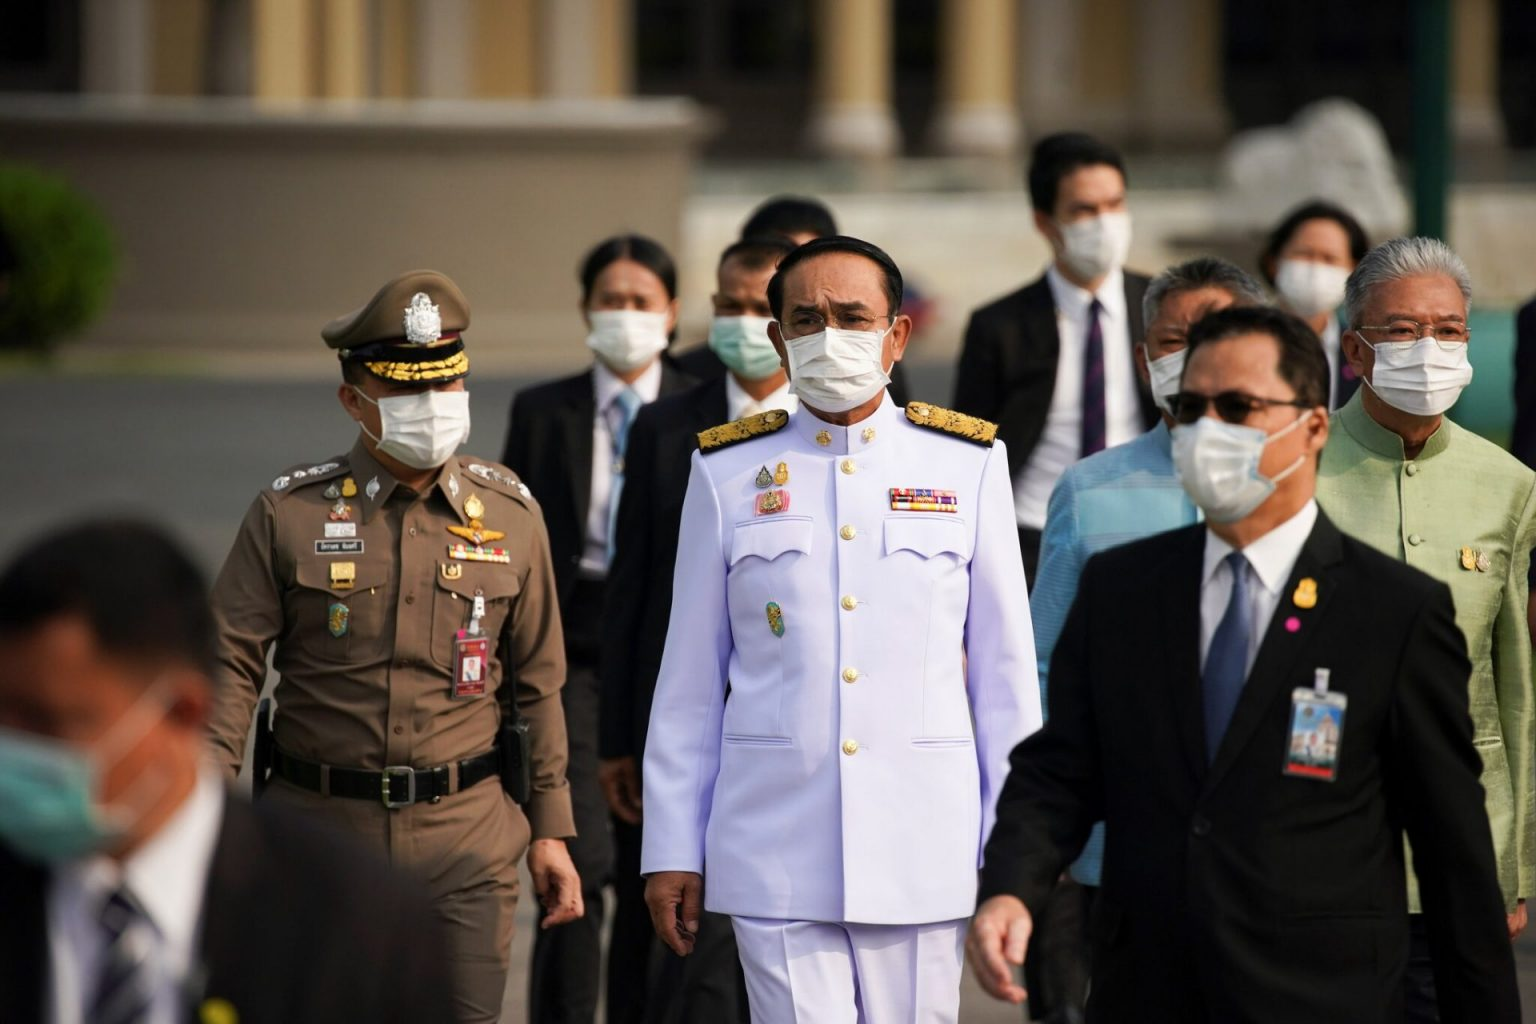 Covid-19: Thailand's Prime Minister Fined $190 For Not Wearing Face Mask